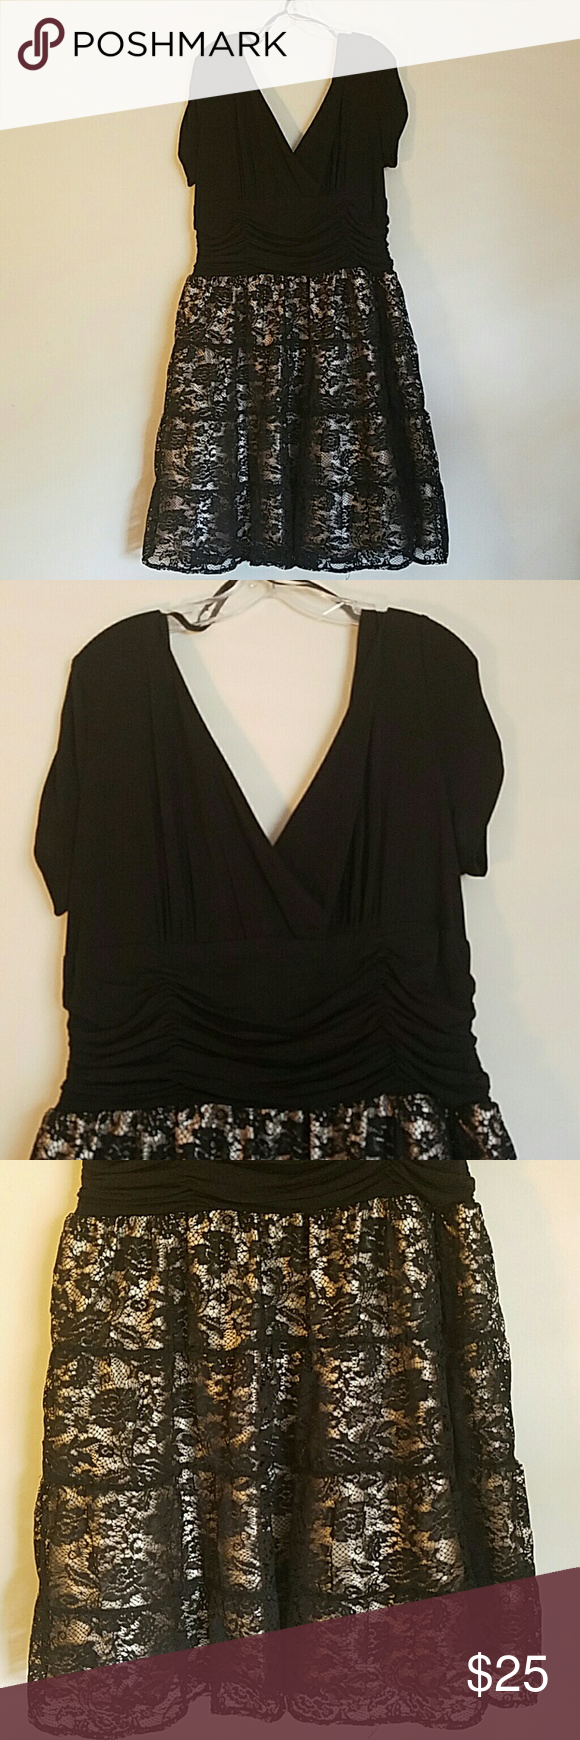 Gorgeous cocktail dress from Dressbarn For those lovely ladies with those curves, let me tell you this is that dress for that special occasion. Worn only once for a banquet dinner. Size 18. No tears, stains or snags. Message me with any questions. Dress Barn Dresses Midi